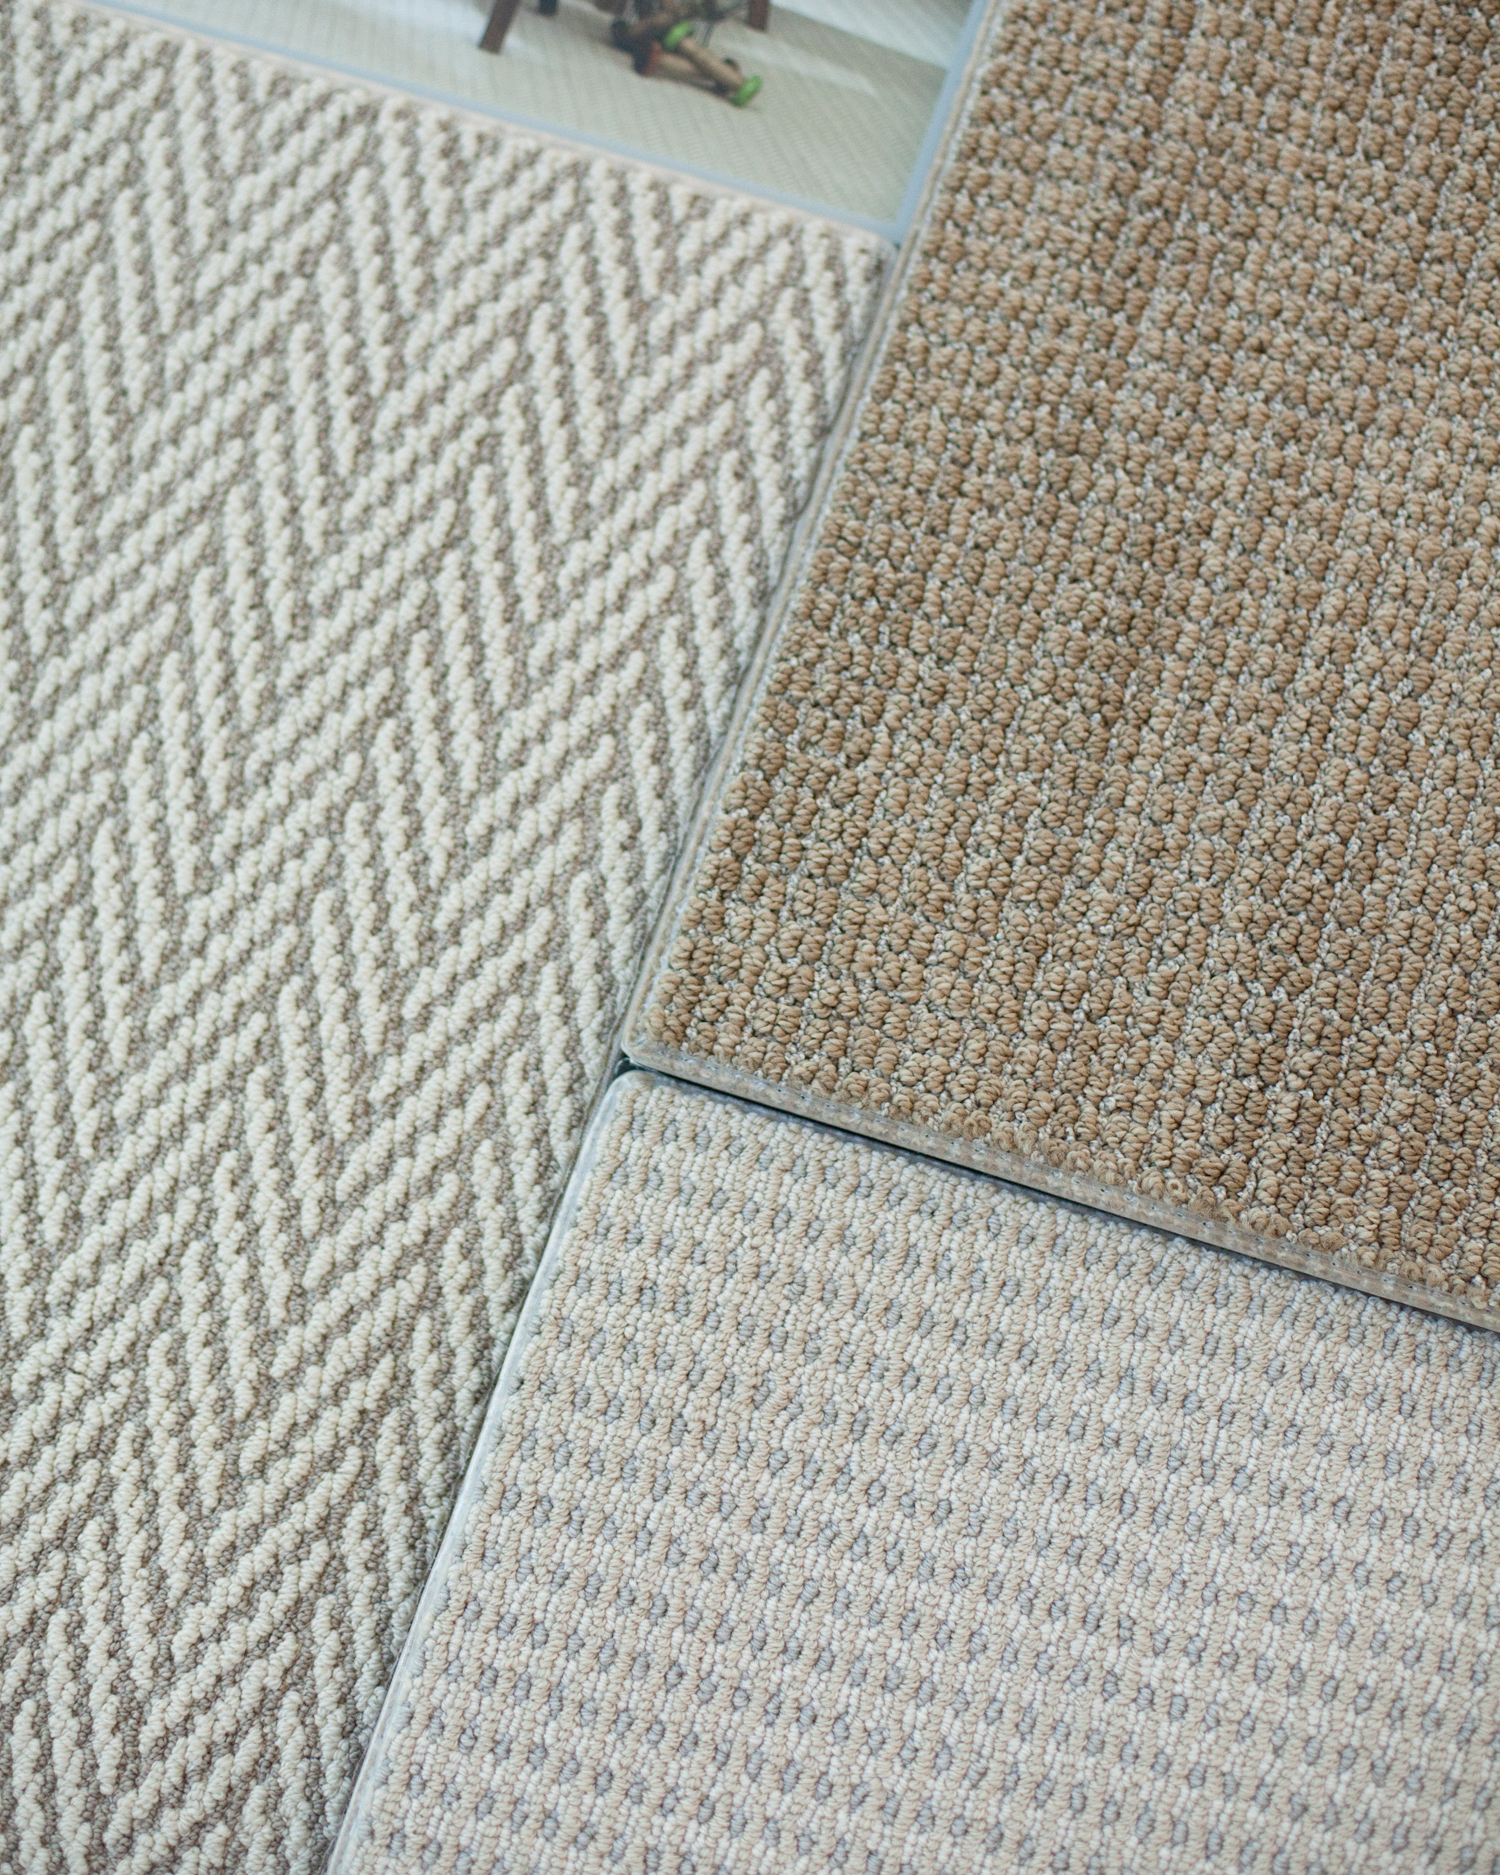 Stainmaster carpet options